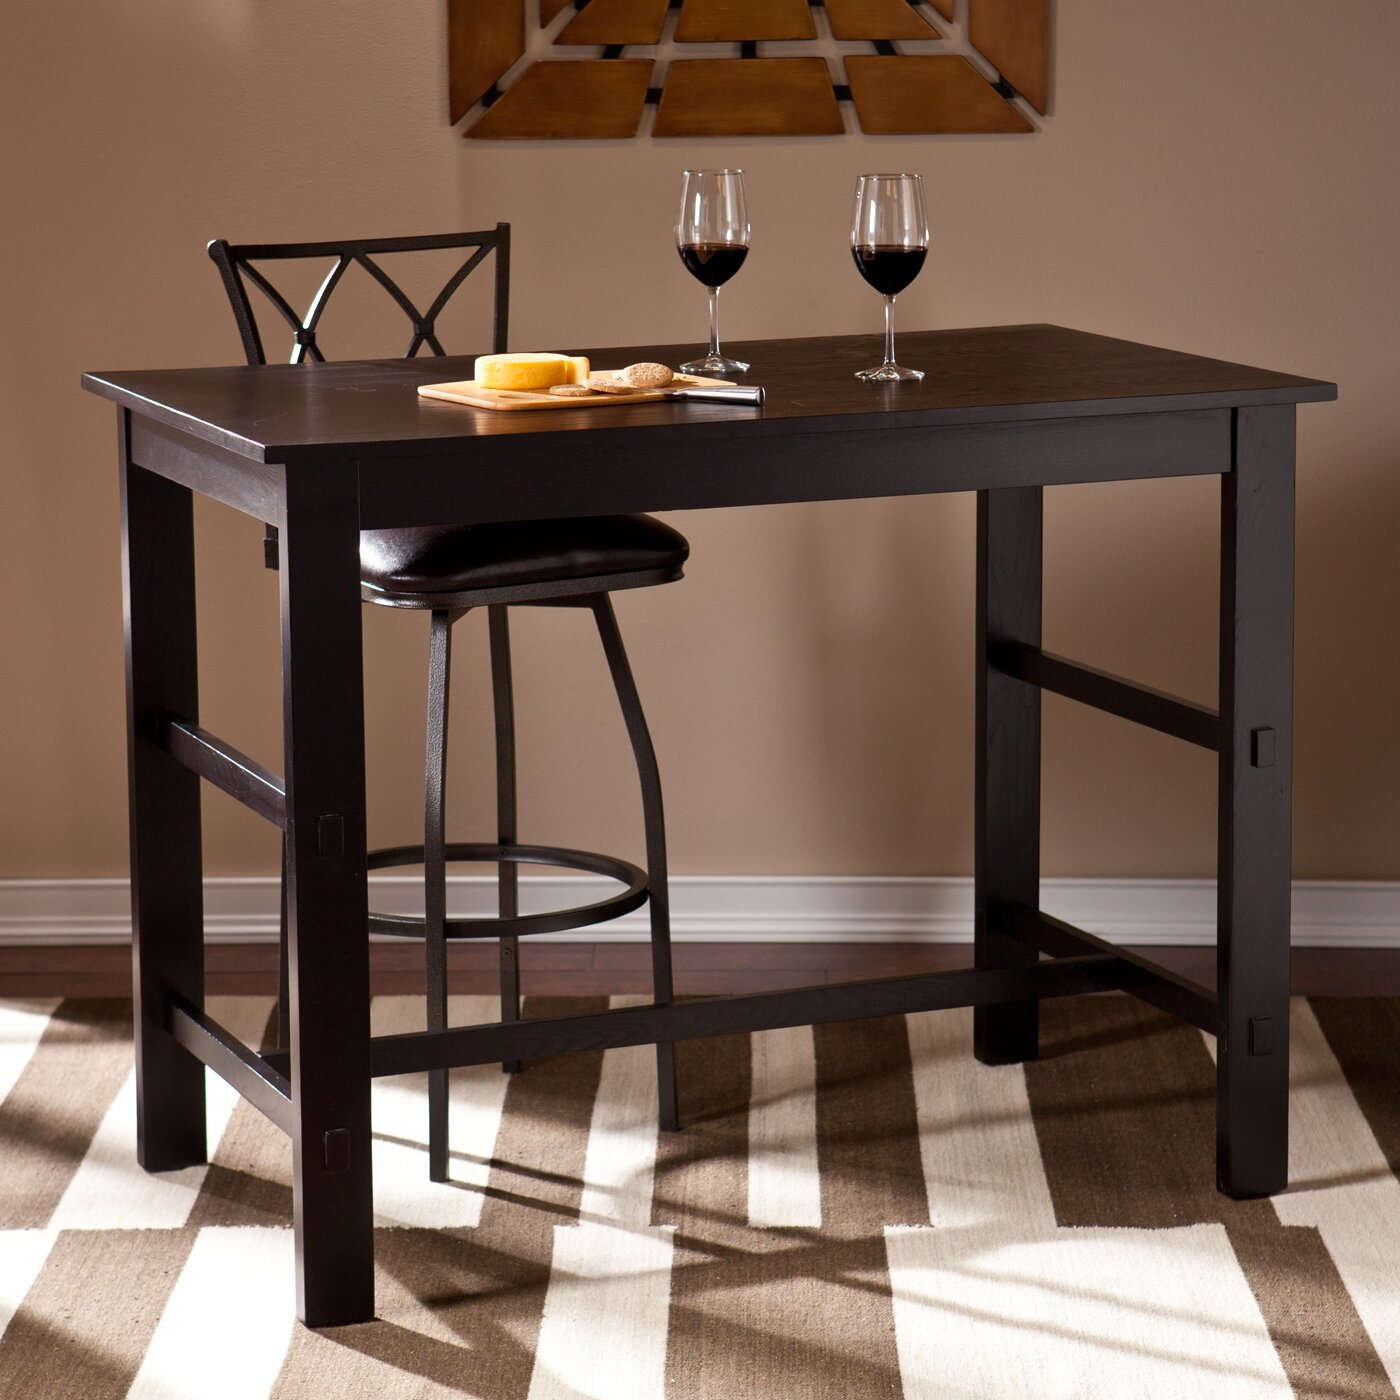 Counter Height Dining Tables: Wildon Home ® Hagan Counter Height Dining Table & Reviews